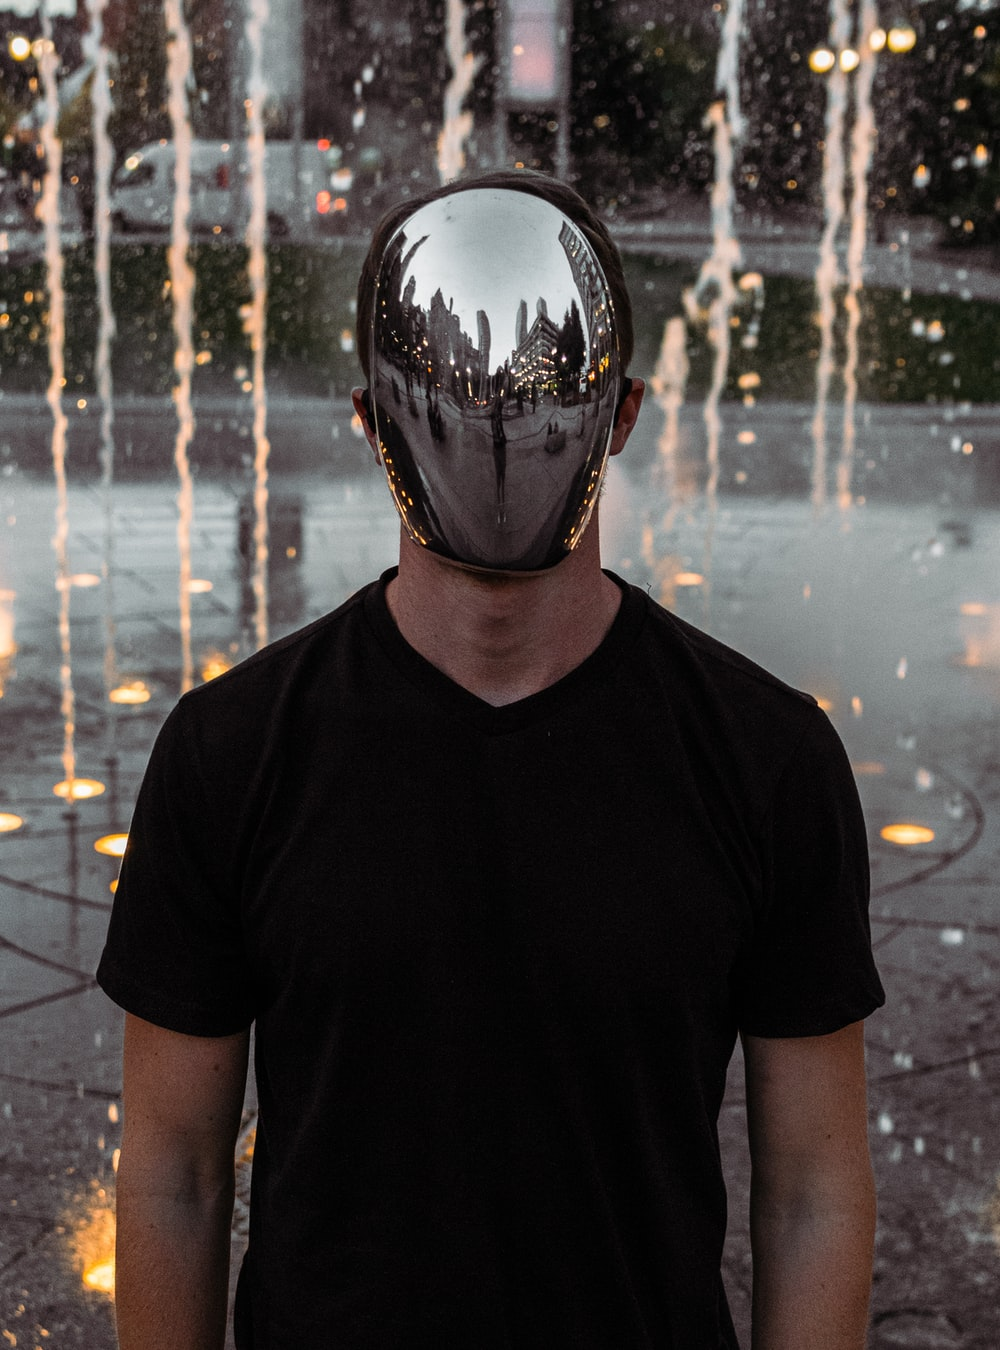 man covering his face standing